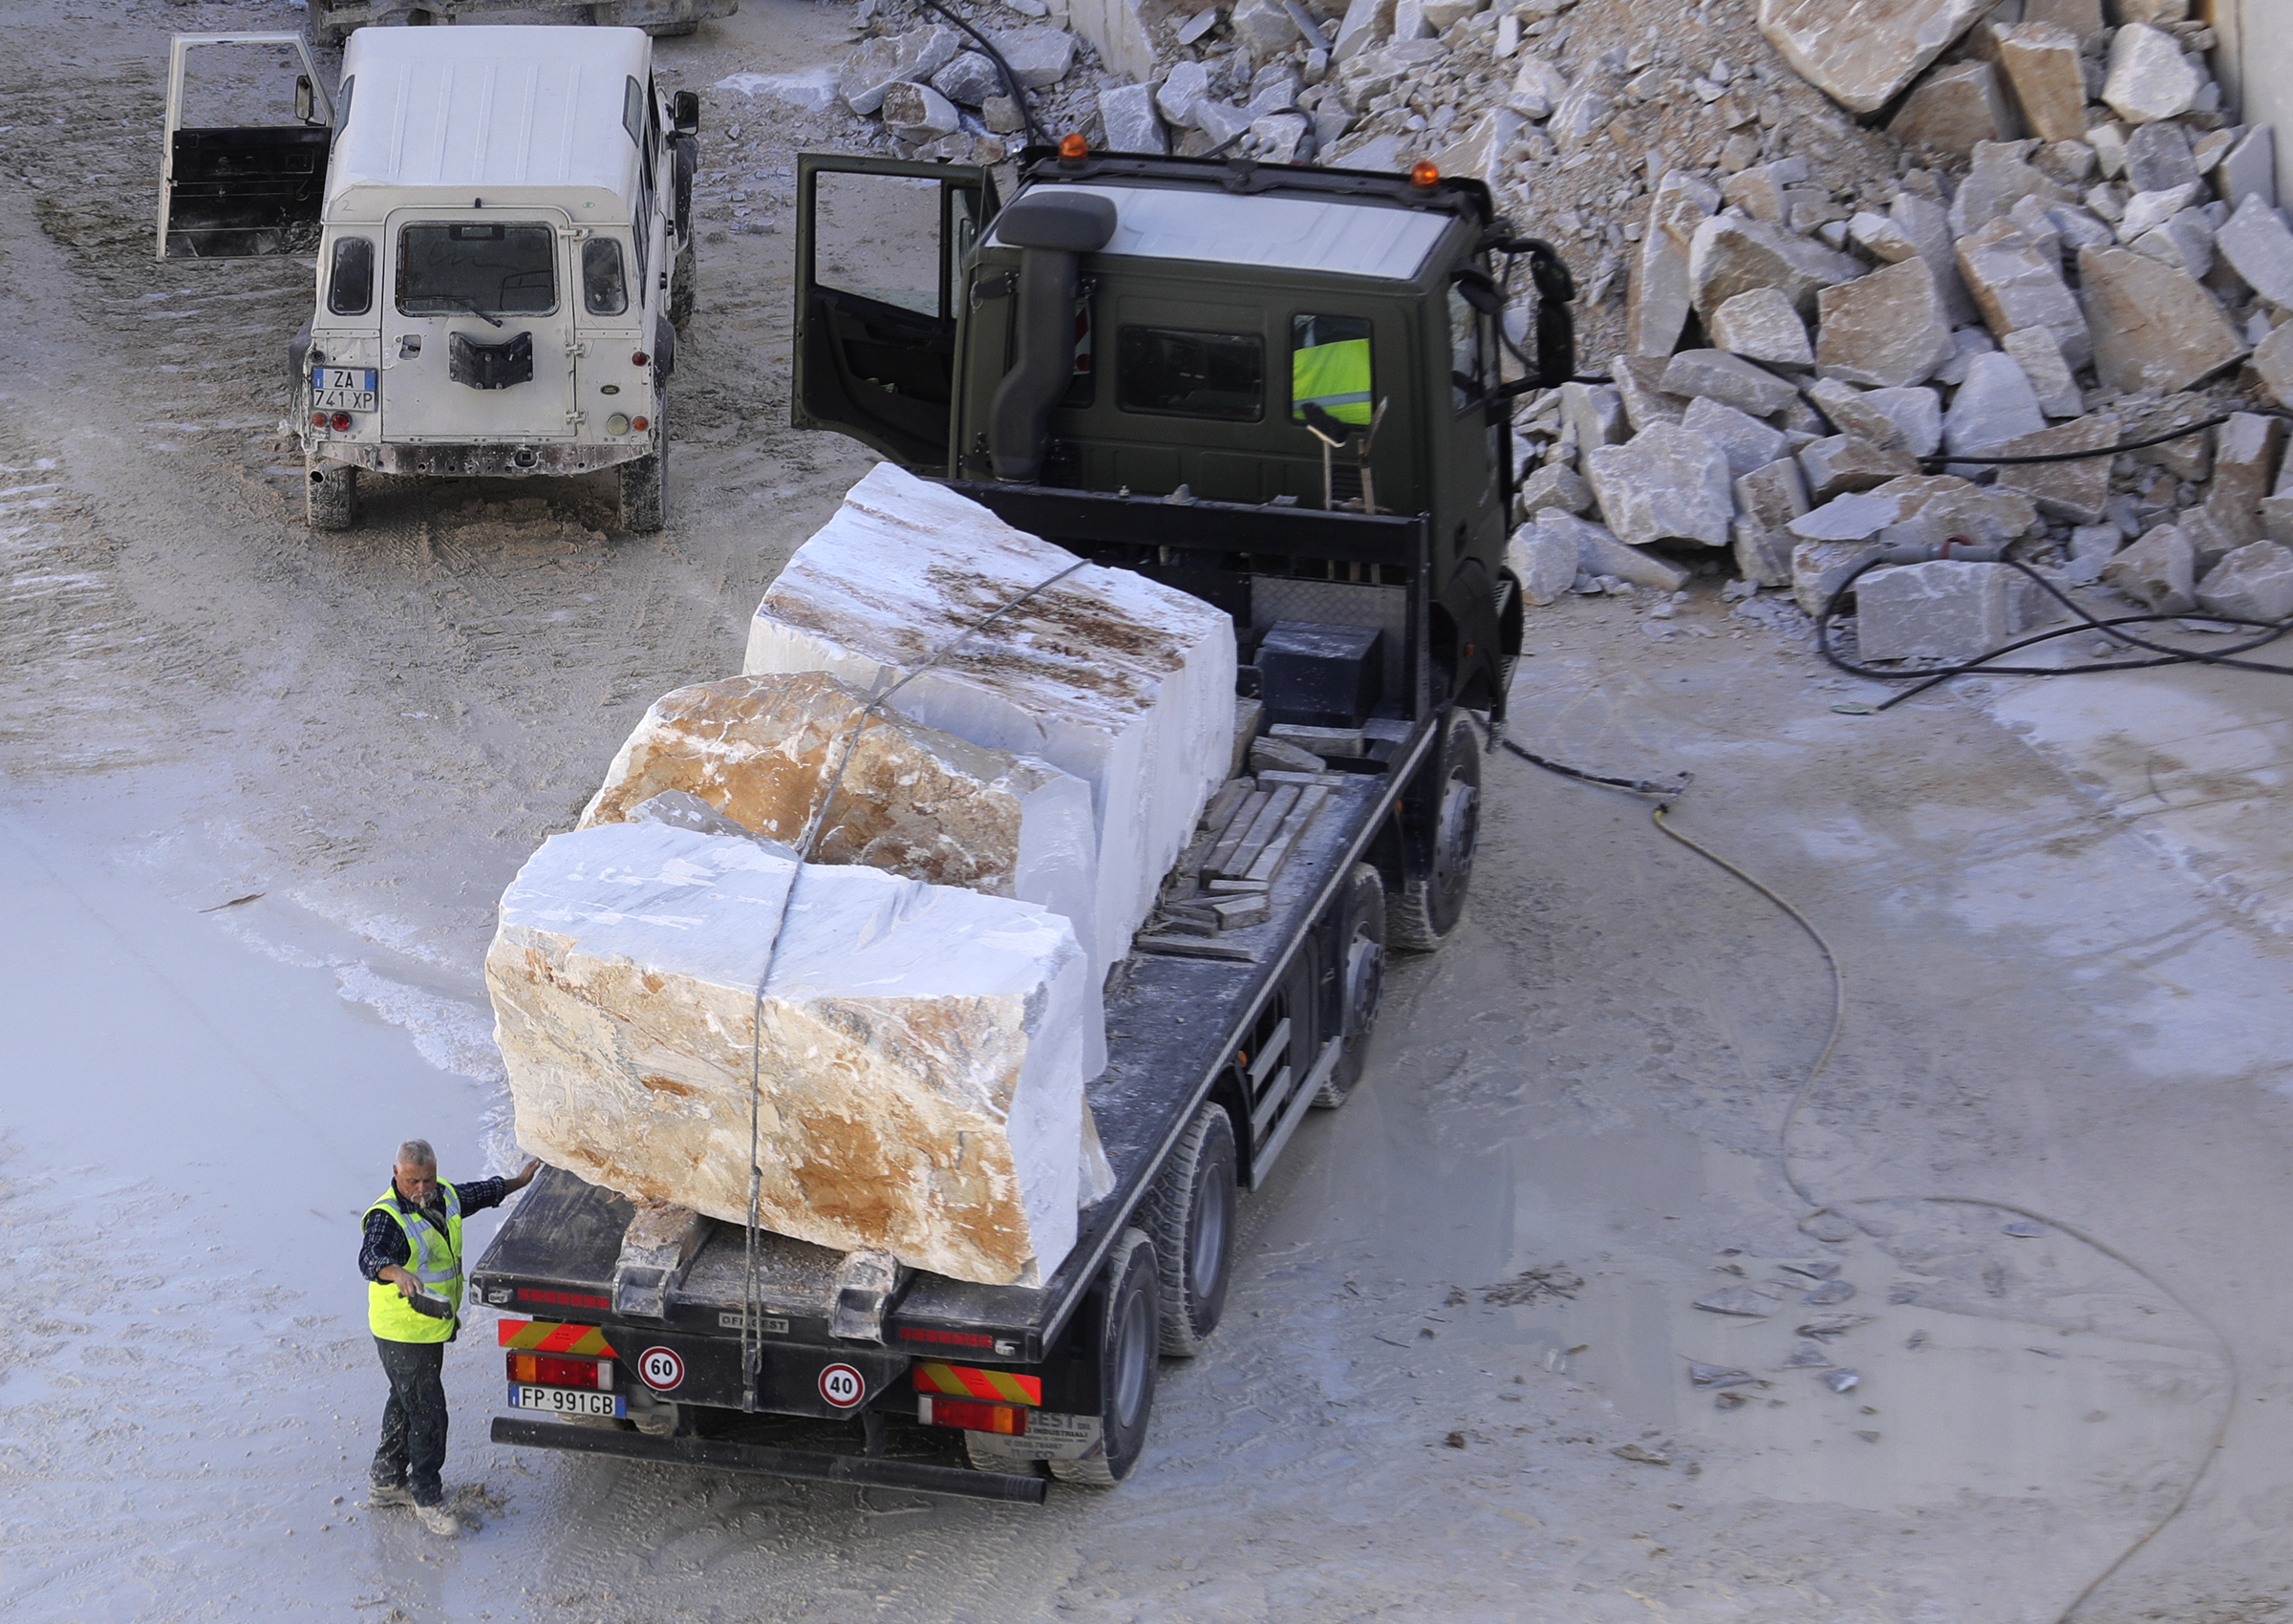 Trucks move marble blocks at a marble quarry in Carrara, Italy, on Thursday, Nov. 15, 2018.